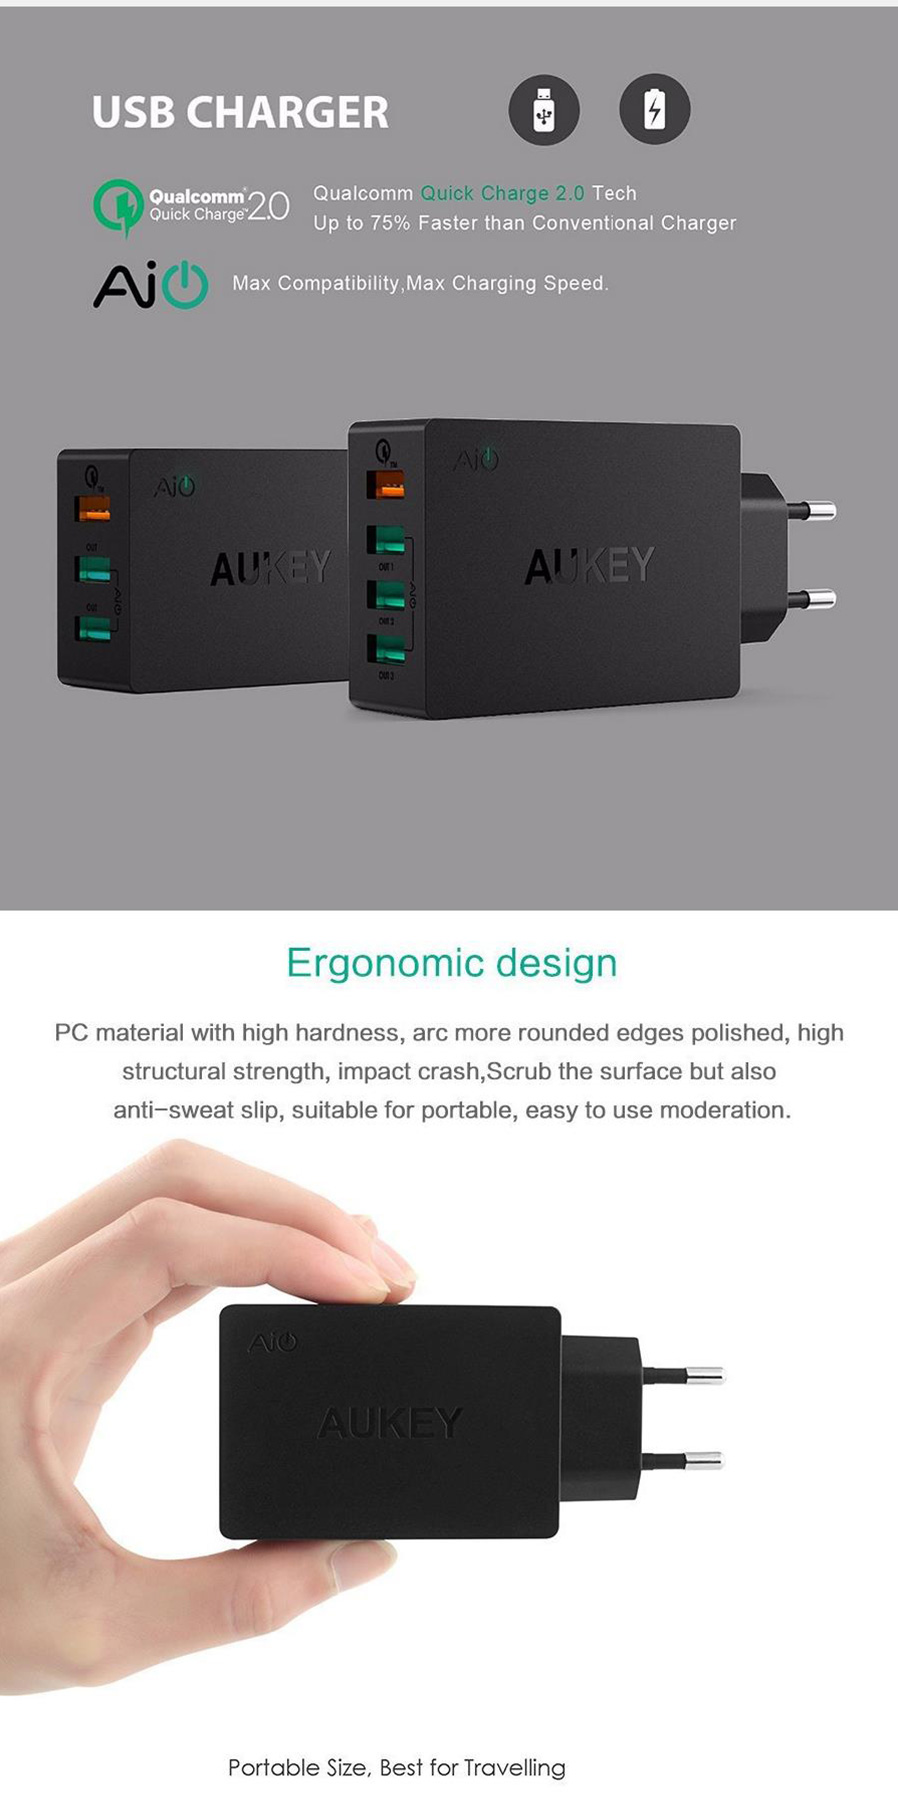 Aukey Pa T2 Wall Charger Quick Charge 20 W 3 Port Usb Black Us U28 Turbo 18w Fastcharging General Brand